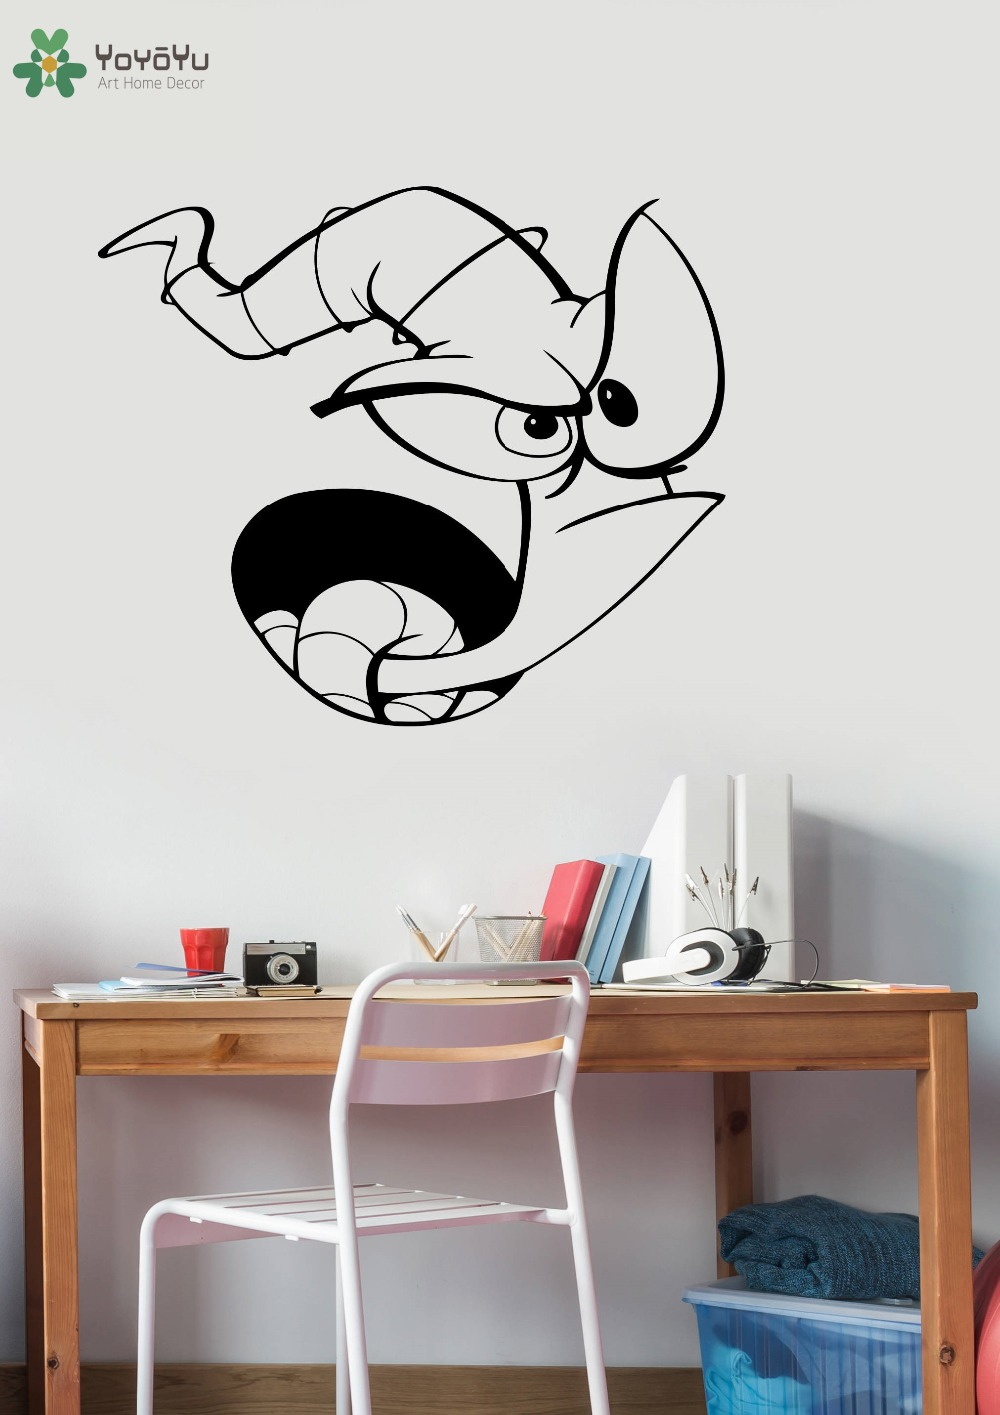 Cartoon Earthworm Wall Decal Jim Comic Vinyl Wall Stickers For Kids Rooms Baby Bedroom Art Decoration Gift Game Home Decor SY462